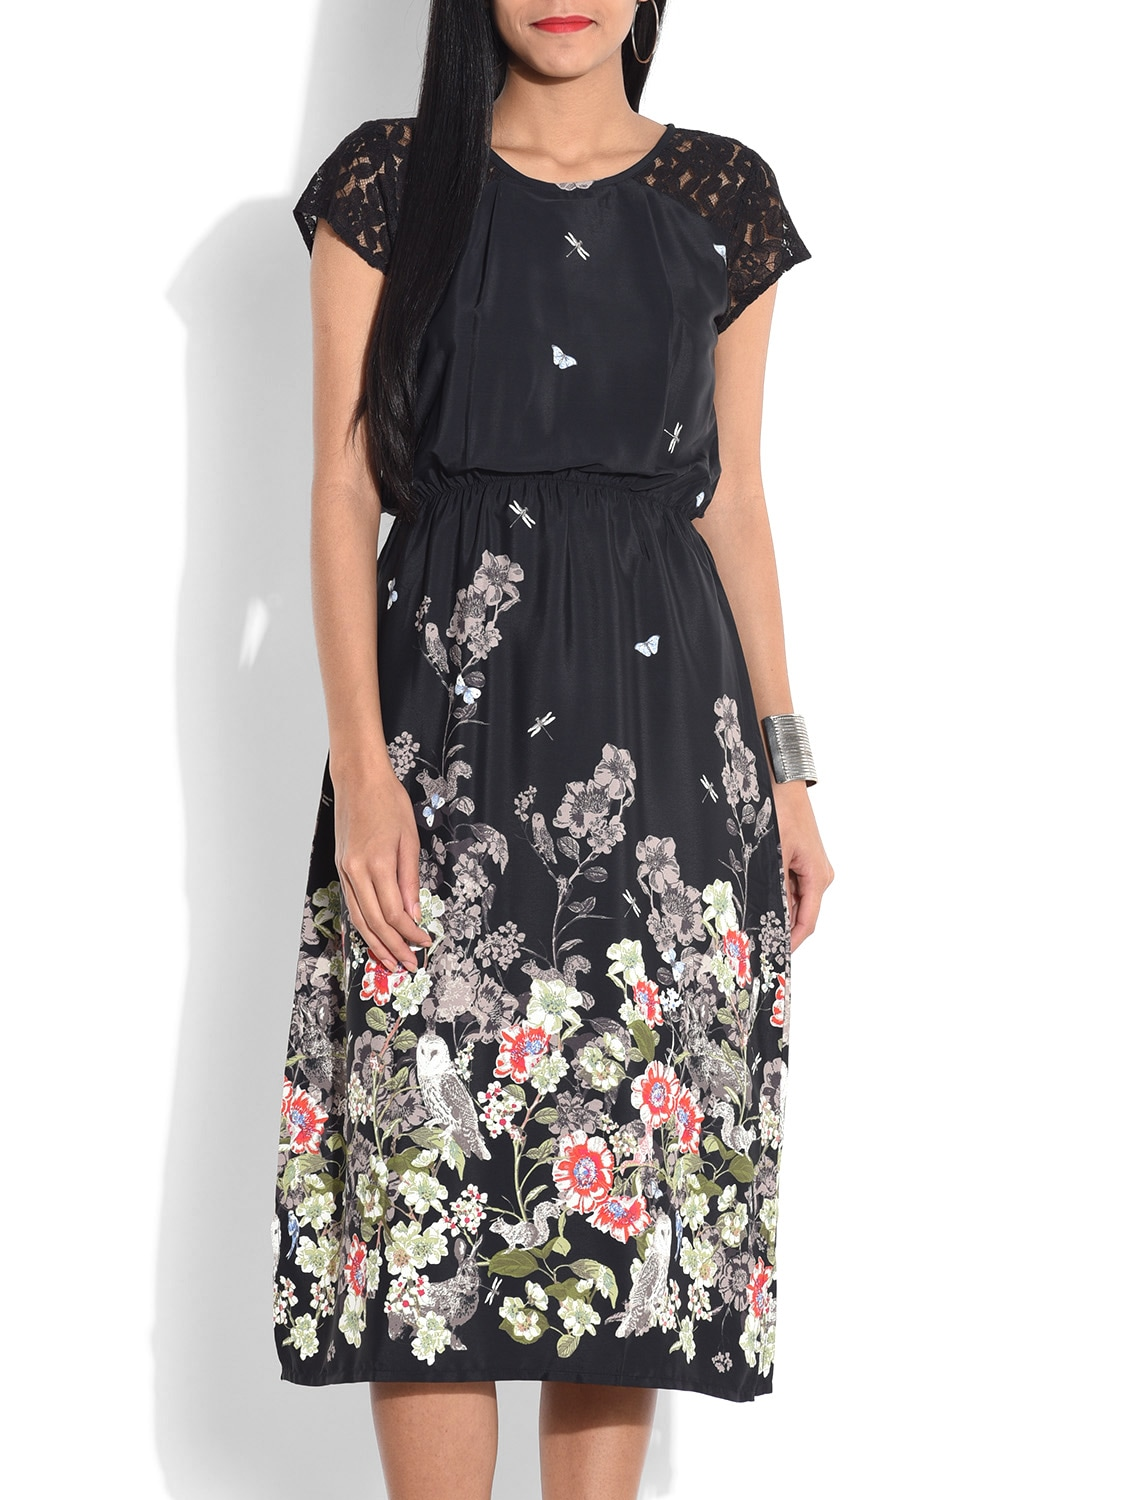 Black Floral Printed Dress With Lace Sleeves - By